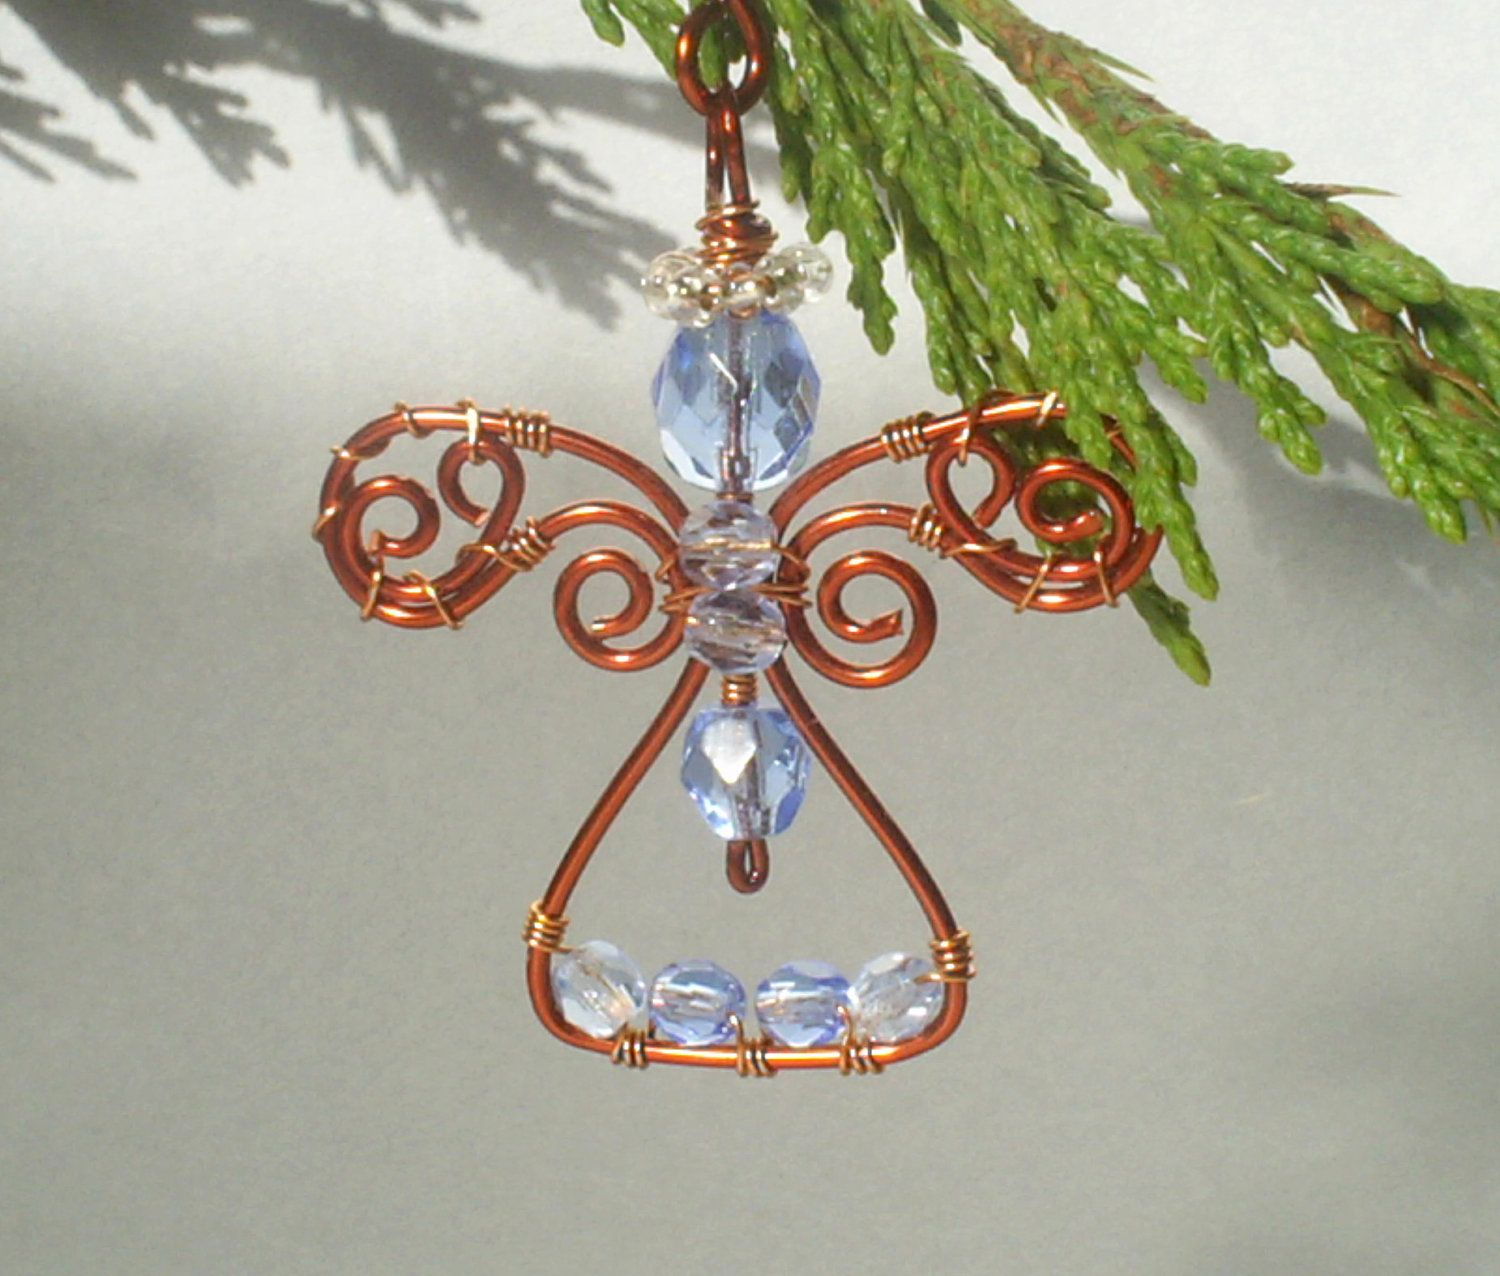 Blue guardian angel pendant or Christmas ornament copper enameled wire wrapped jewelry. $31.00, via Etsy.